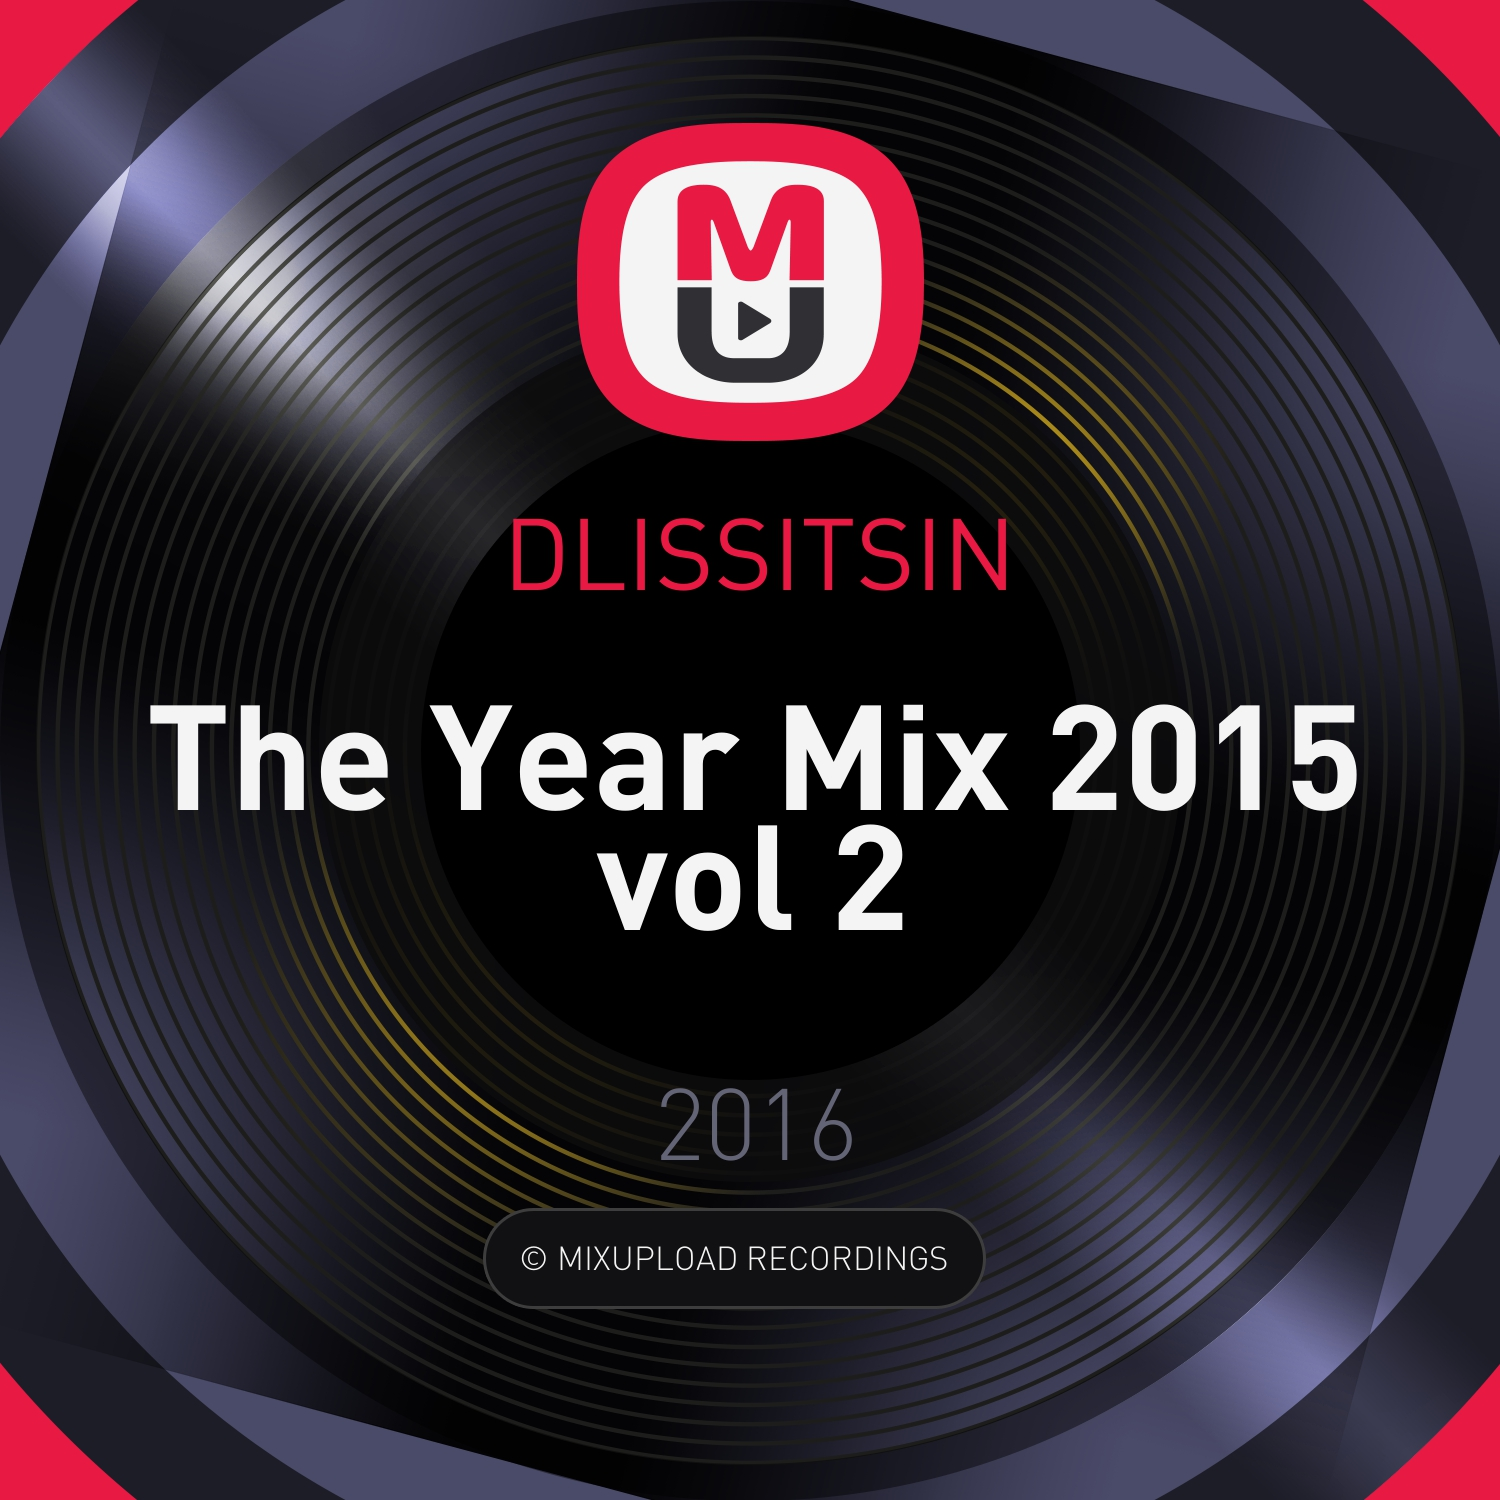 DLISSITSIN - The Year Mix 2015 vol 2 ()